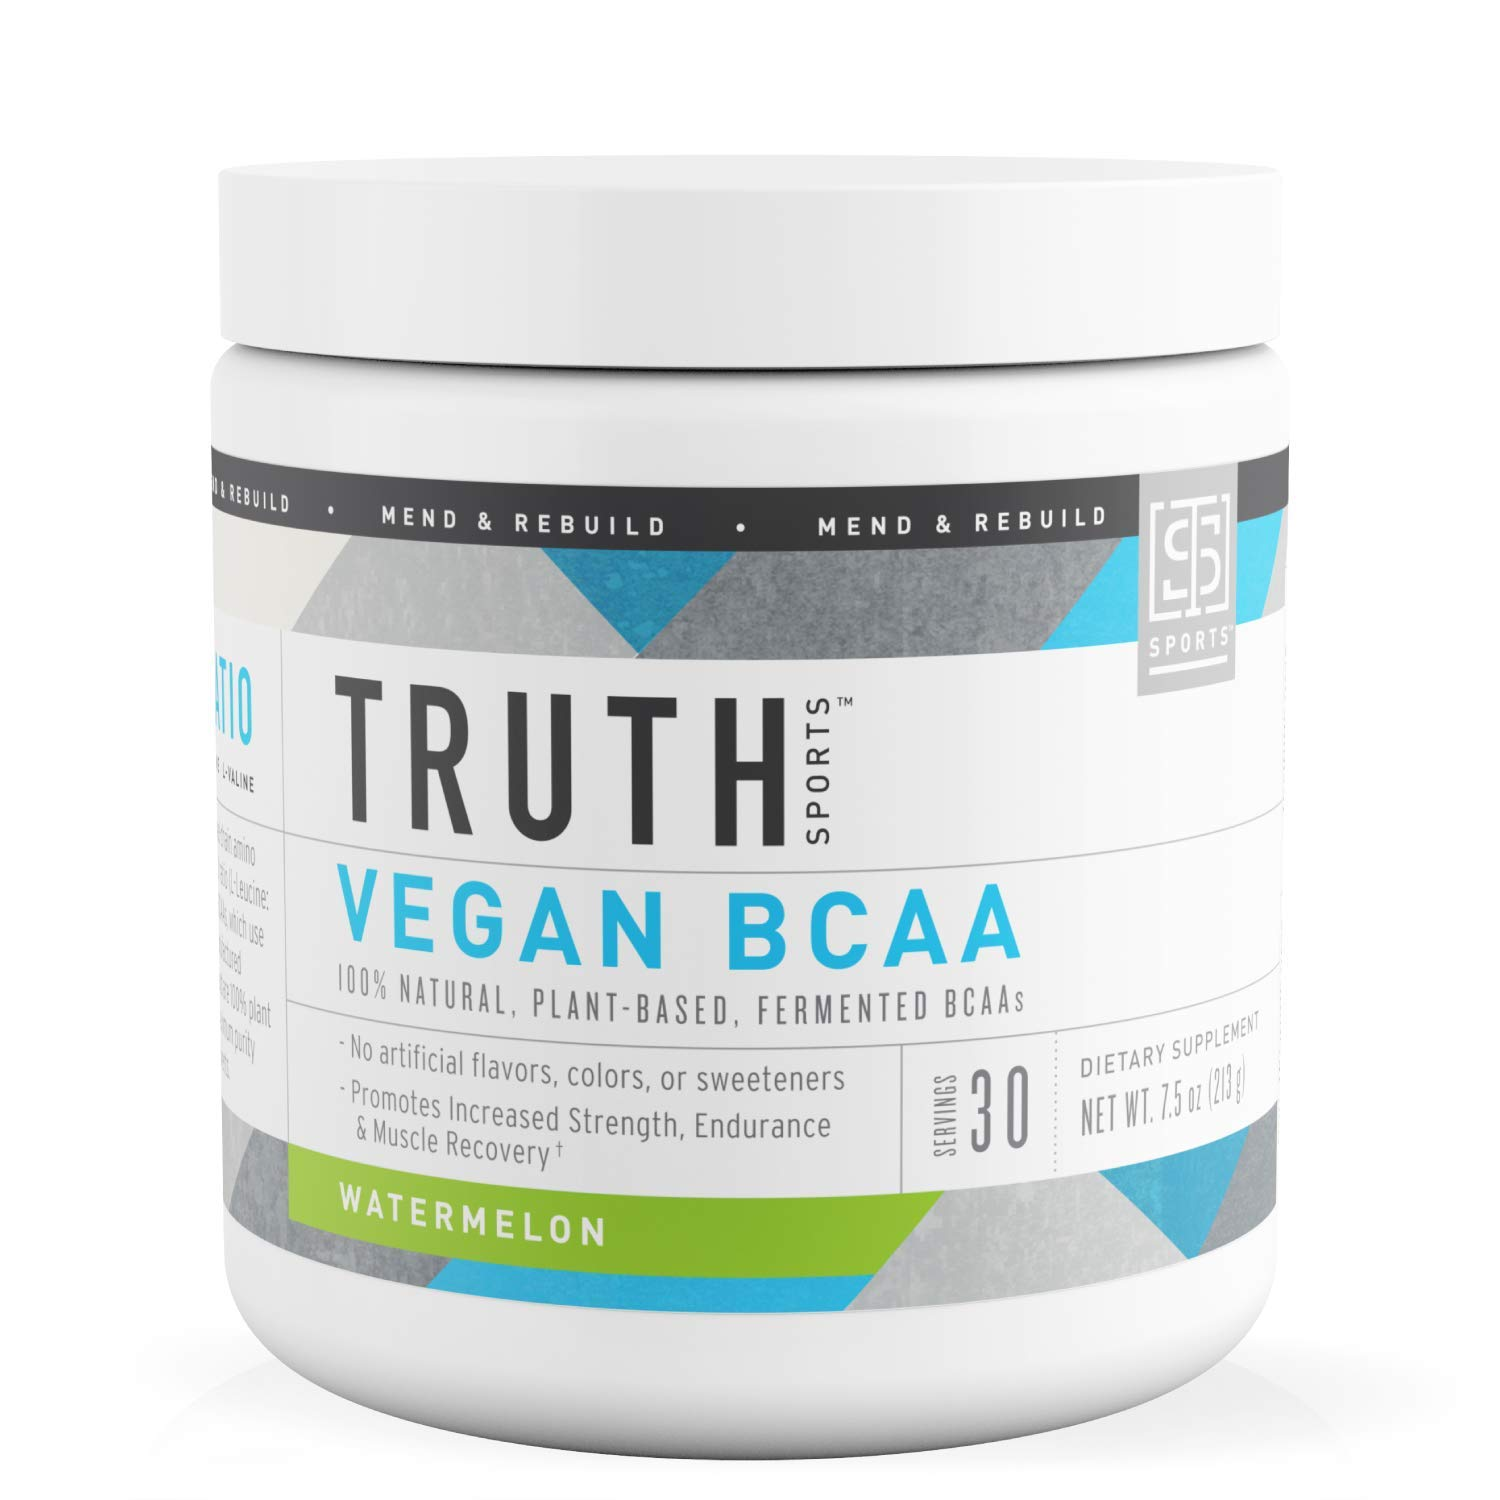 Truth Nutrition Fermented Vegan BCAA Protein Powder Supplement- 2:1:1 Improved Formula is Pure, Powerful All Natural Branched Chain Amino Acids (Watermelon, 30 Servings)